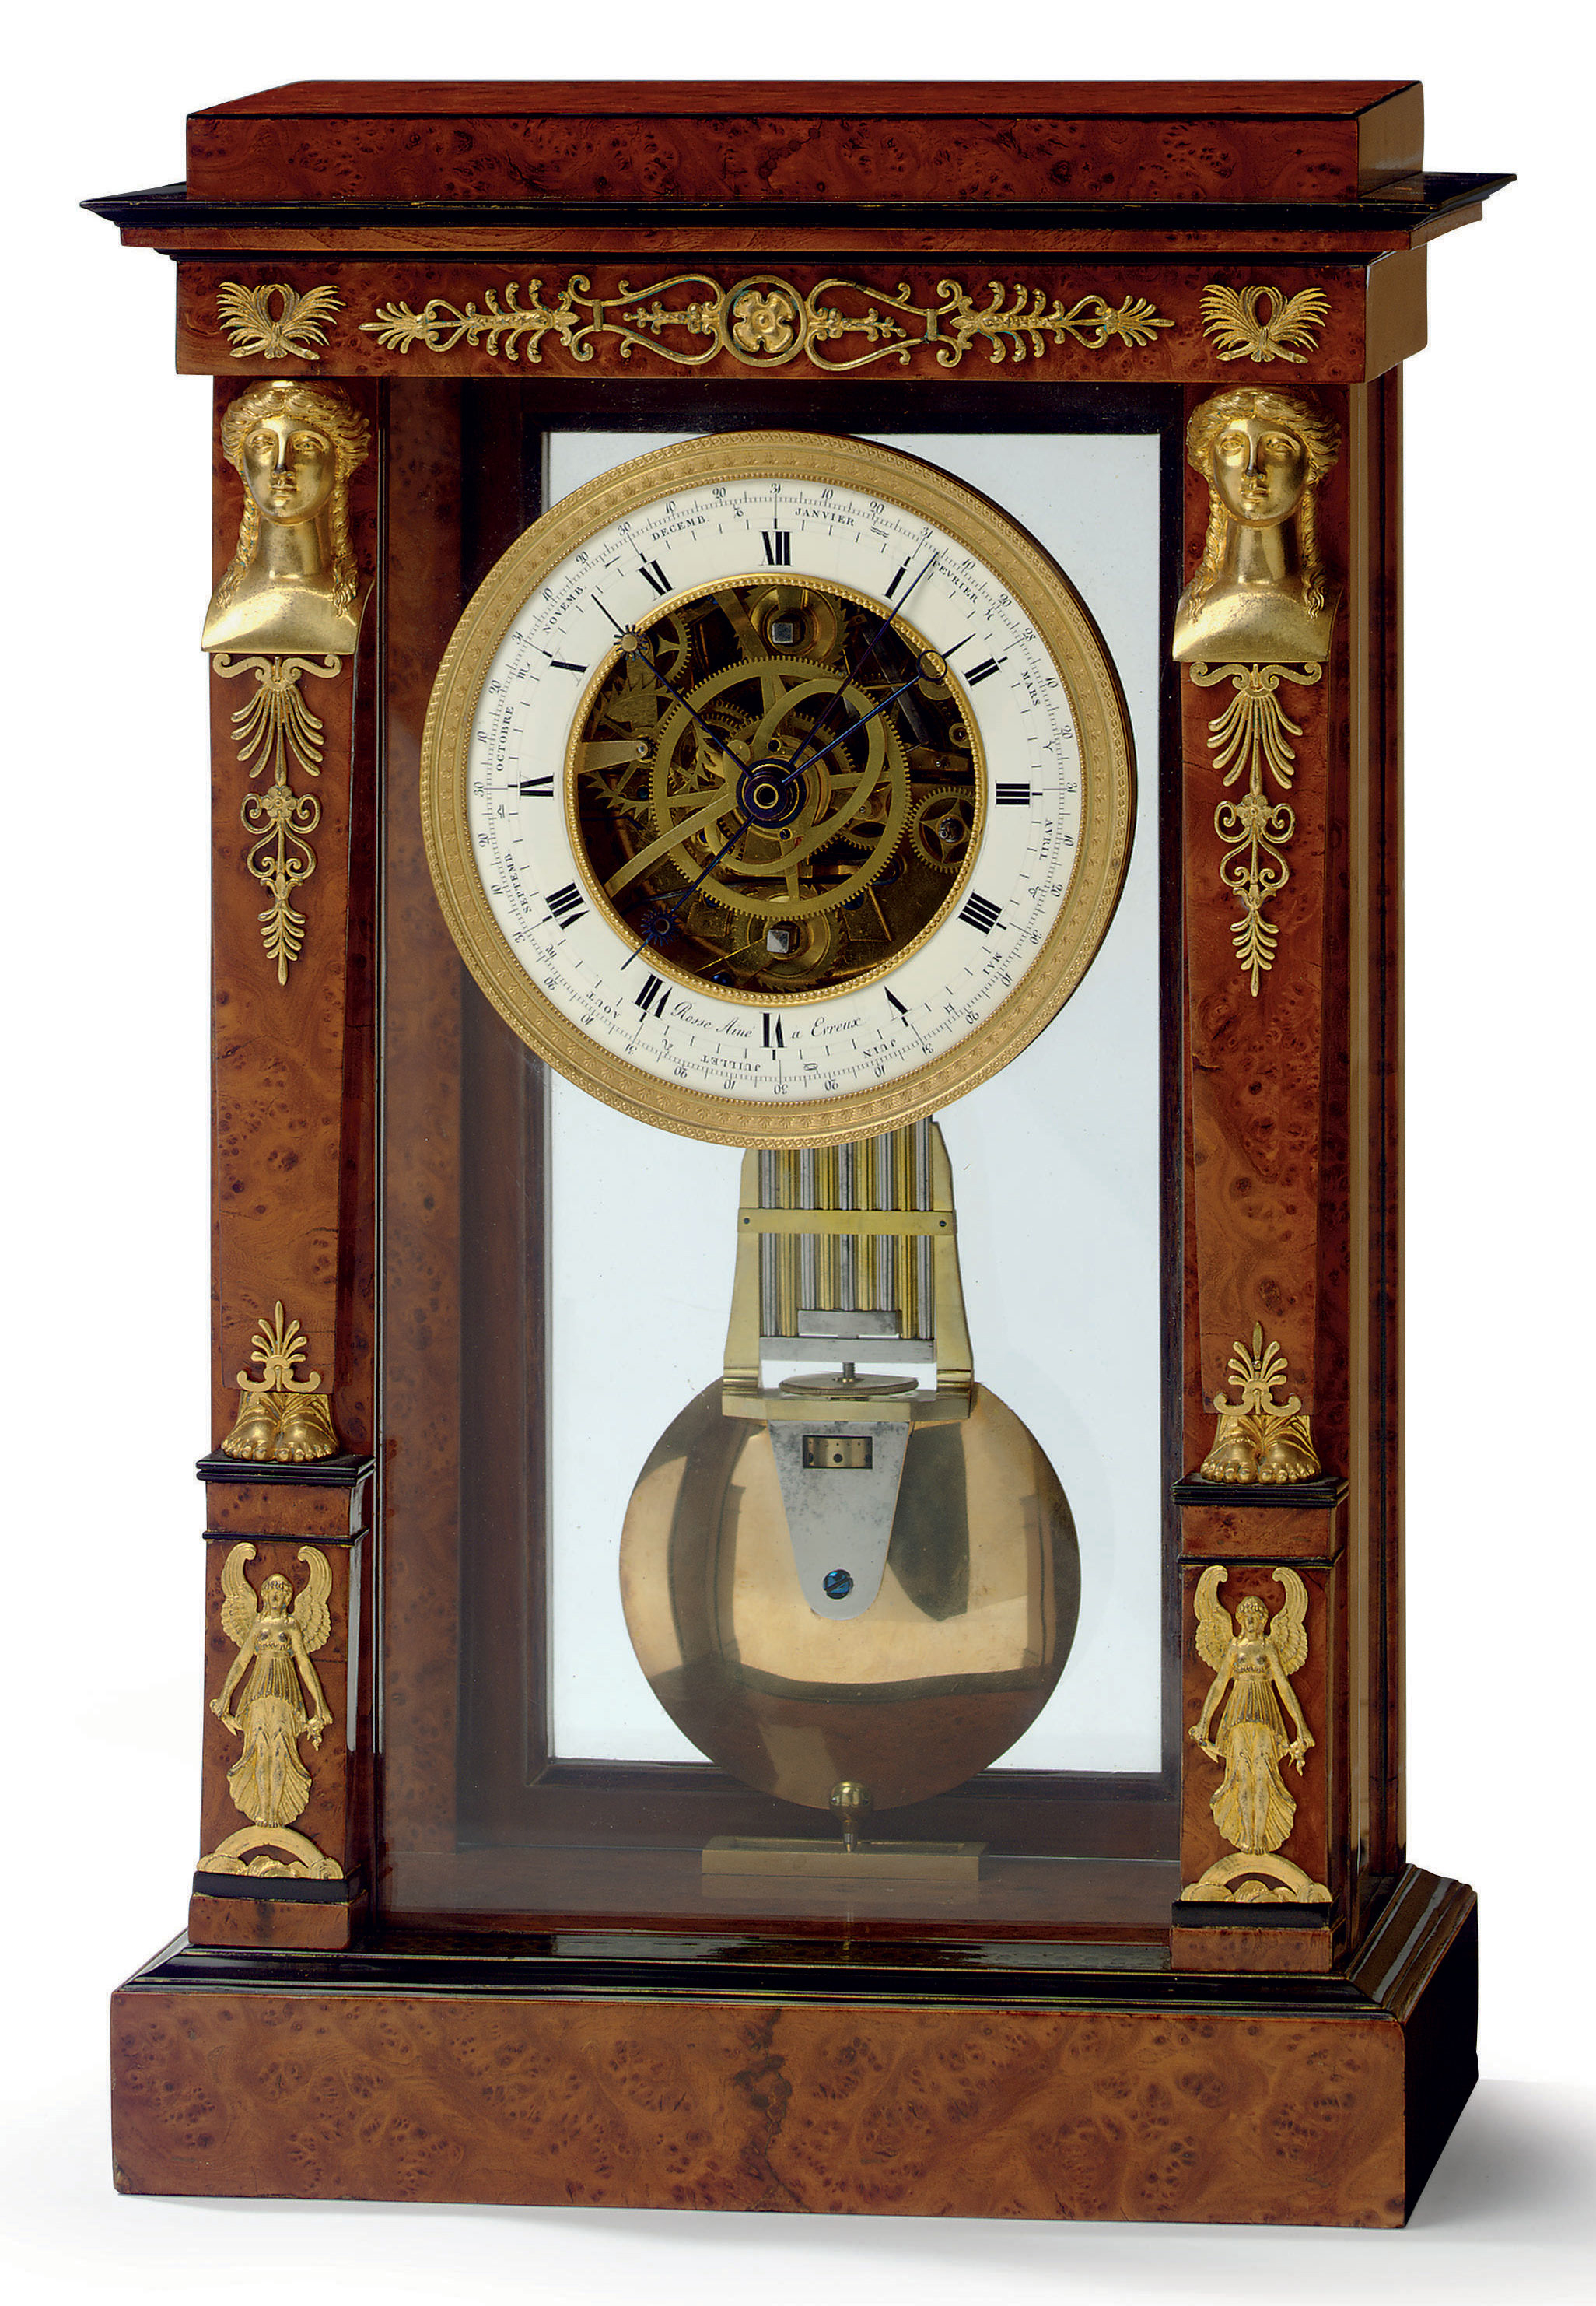 A RESTAURATION ORMOLU-MOUNTED AND PART-EBONIZED AMBOYNA STRIKING MANTEL REGULATOR WITH EQUATION OF TIME, CENTRE SECONDS, YEAR CALENDAR AND REMONTOIRE: 'REGULATEUR DE CHEMINEE'